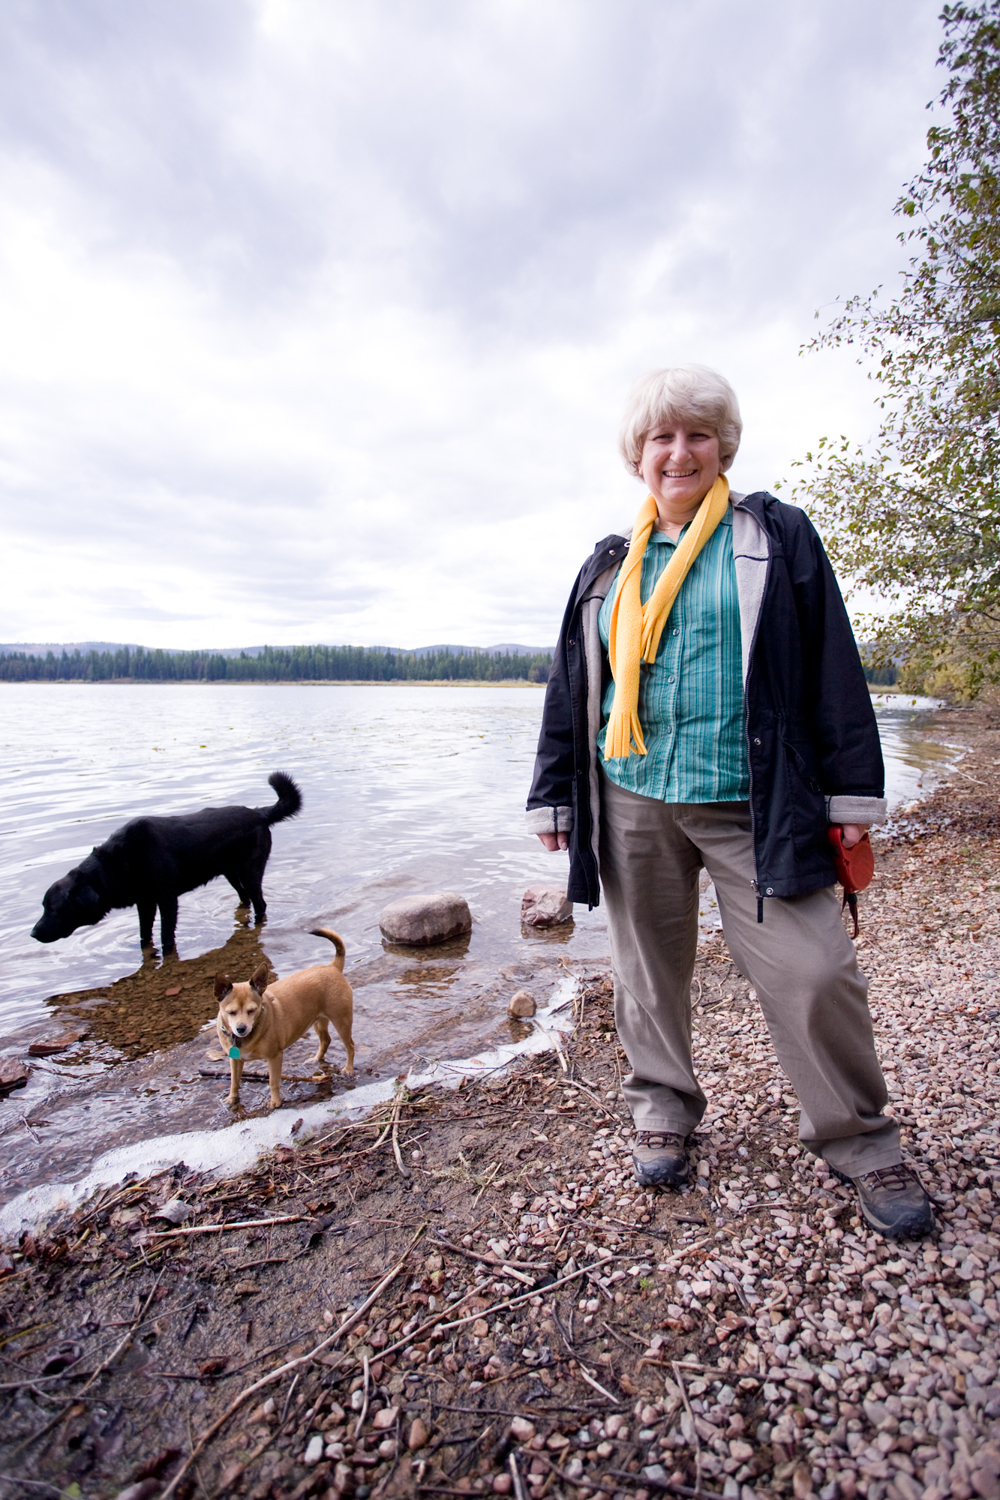 "As part of her daily routine, Love takes her chihuahua mix, Ginger, for a walk near the lake. The neighbor's dog, Ky, often joins them. ""I spend my day in nature,"" Love says. She uses her walks as part of the creative process, and takes time to observe any wildlife she sees on the way."